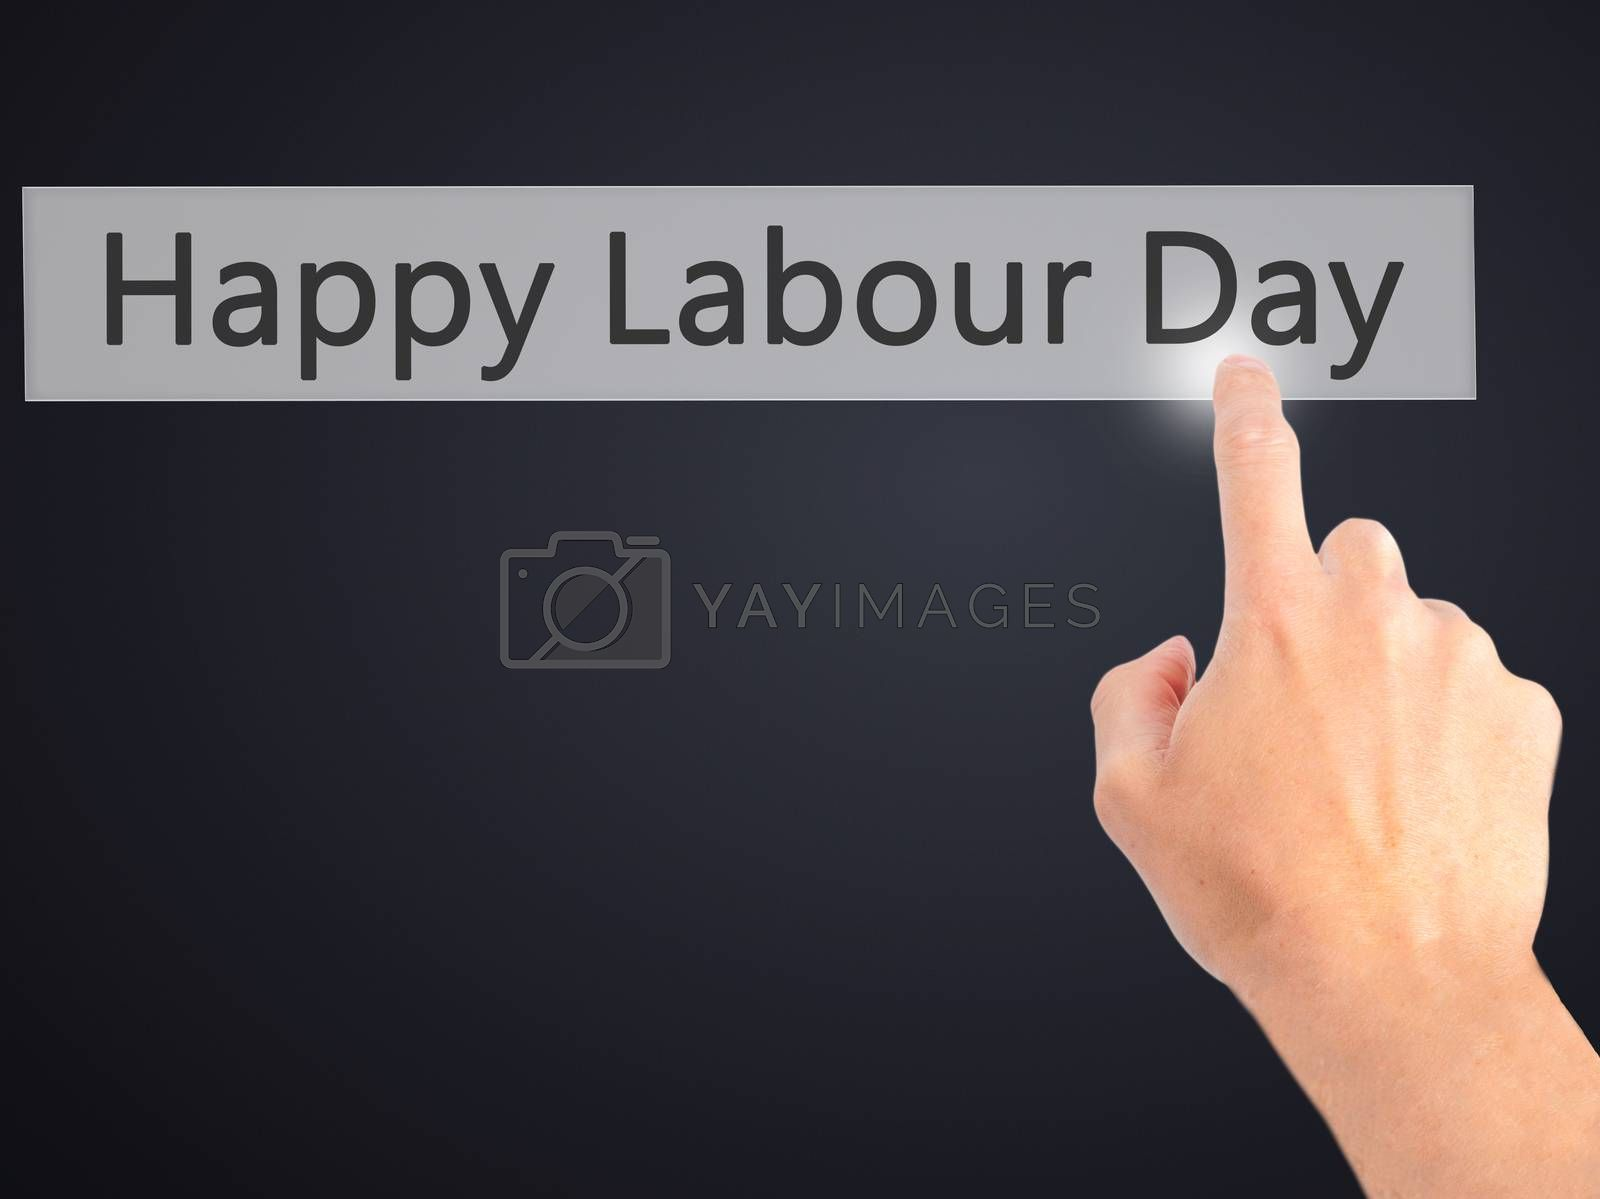 Happy Labour Day - Hand pressing a button on blurred background  by jackald